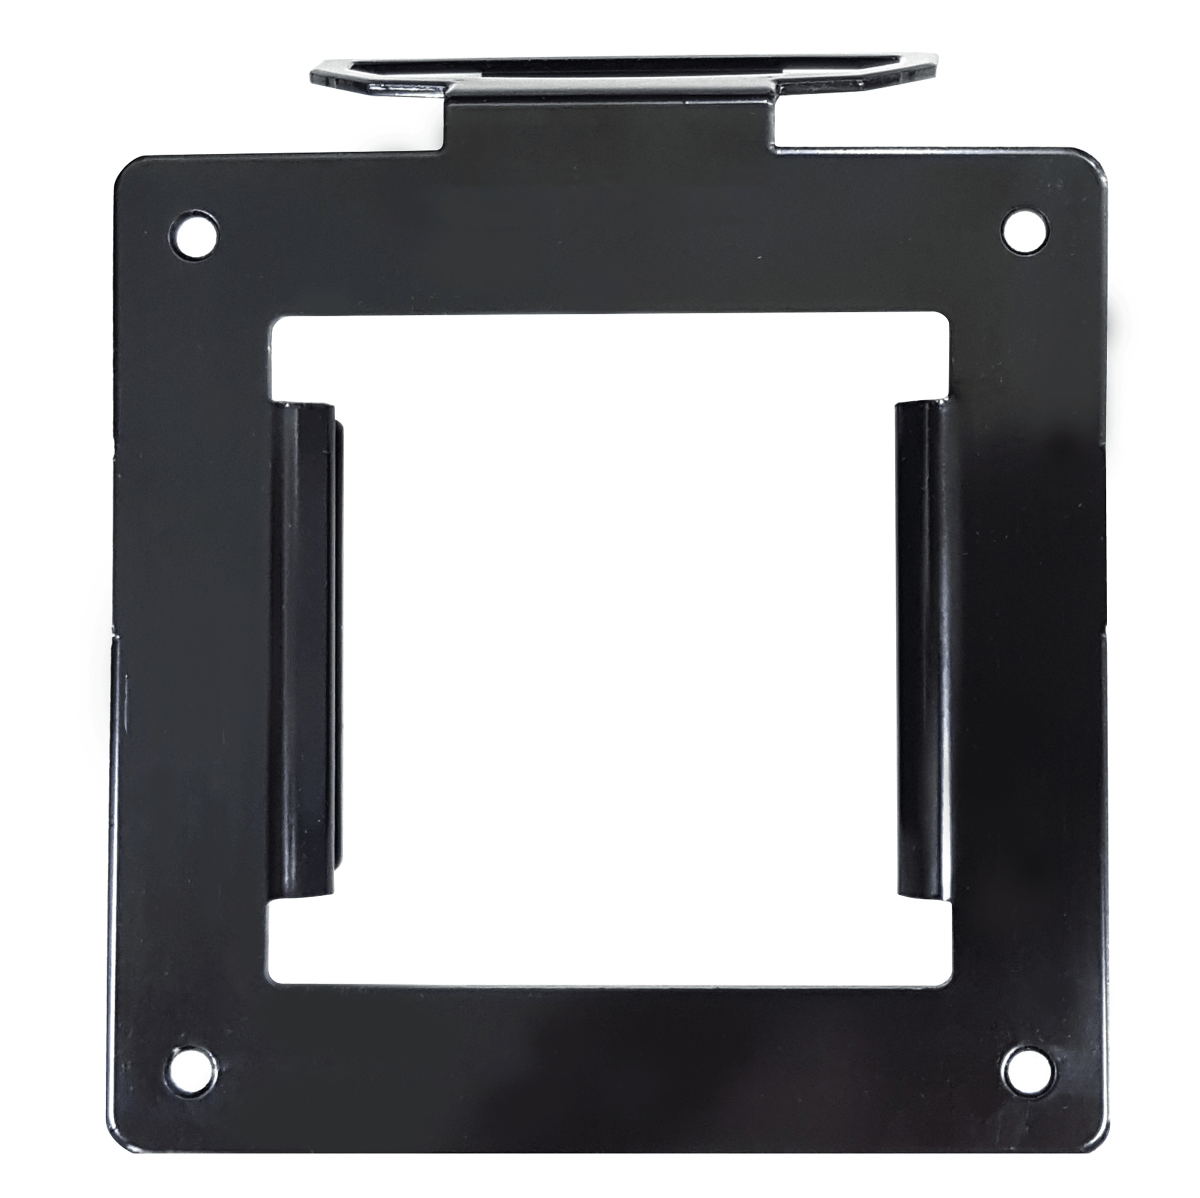 Philips Client mounting bracket BS7B2224B/00